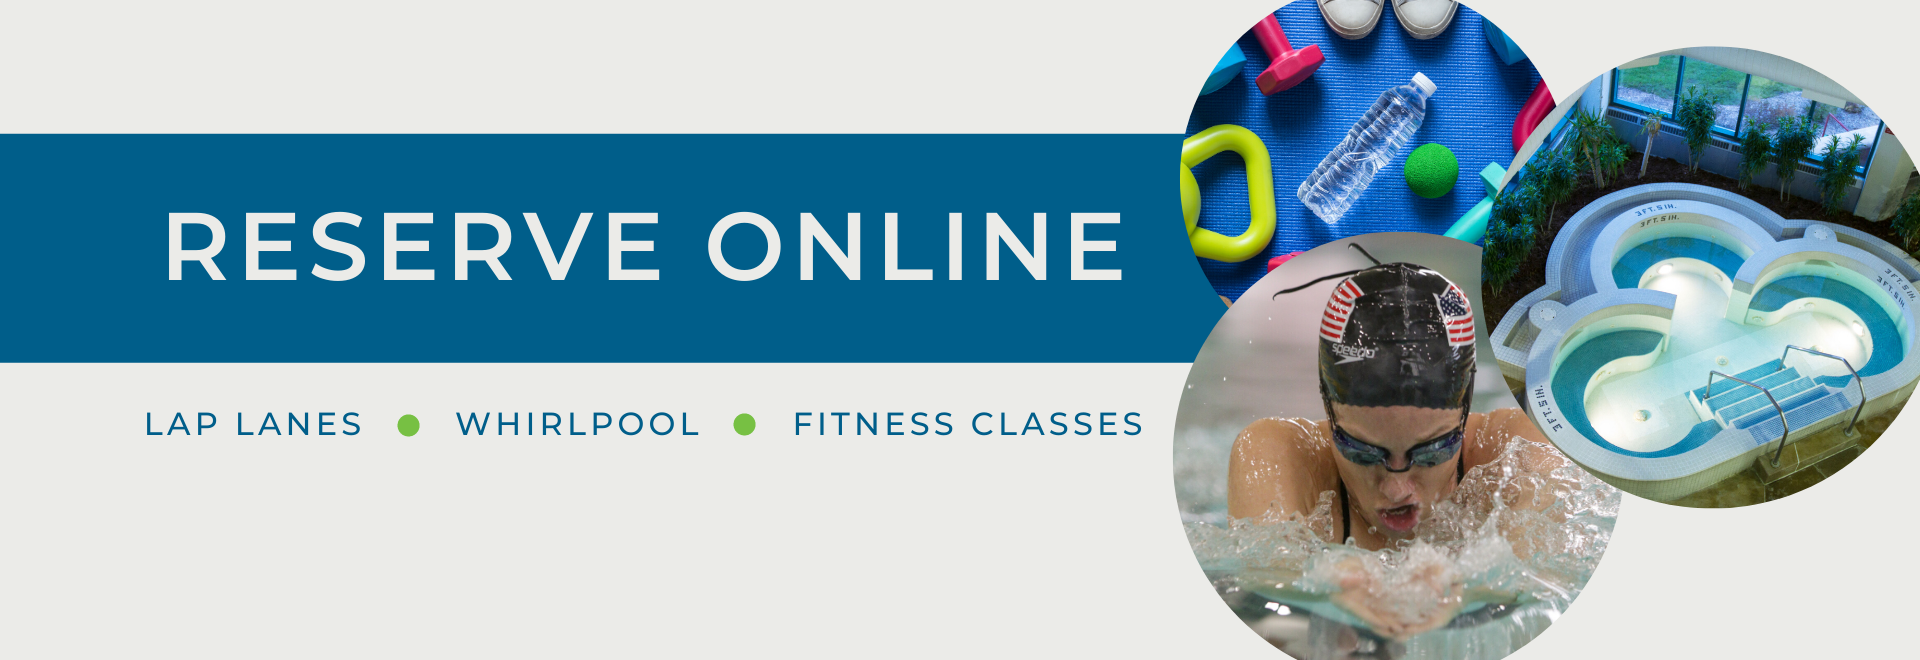 reserve lap lanes, whirlpool, and fitness classes online